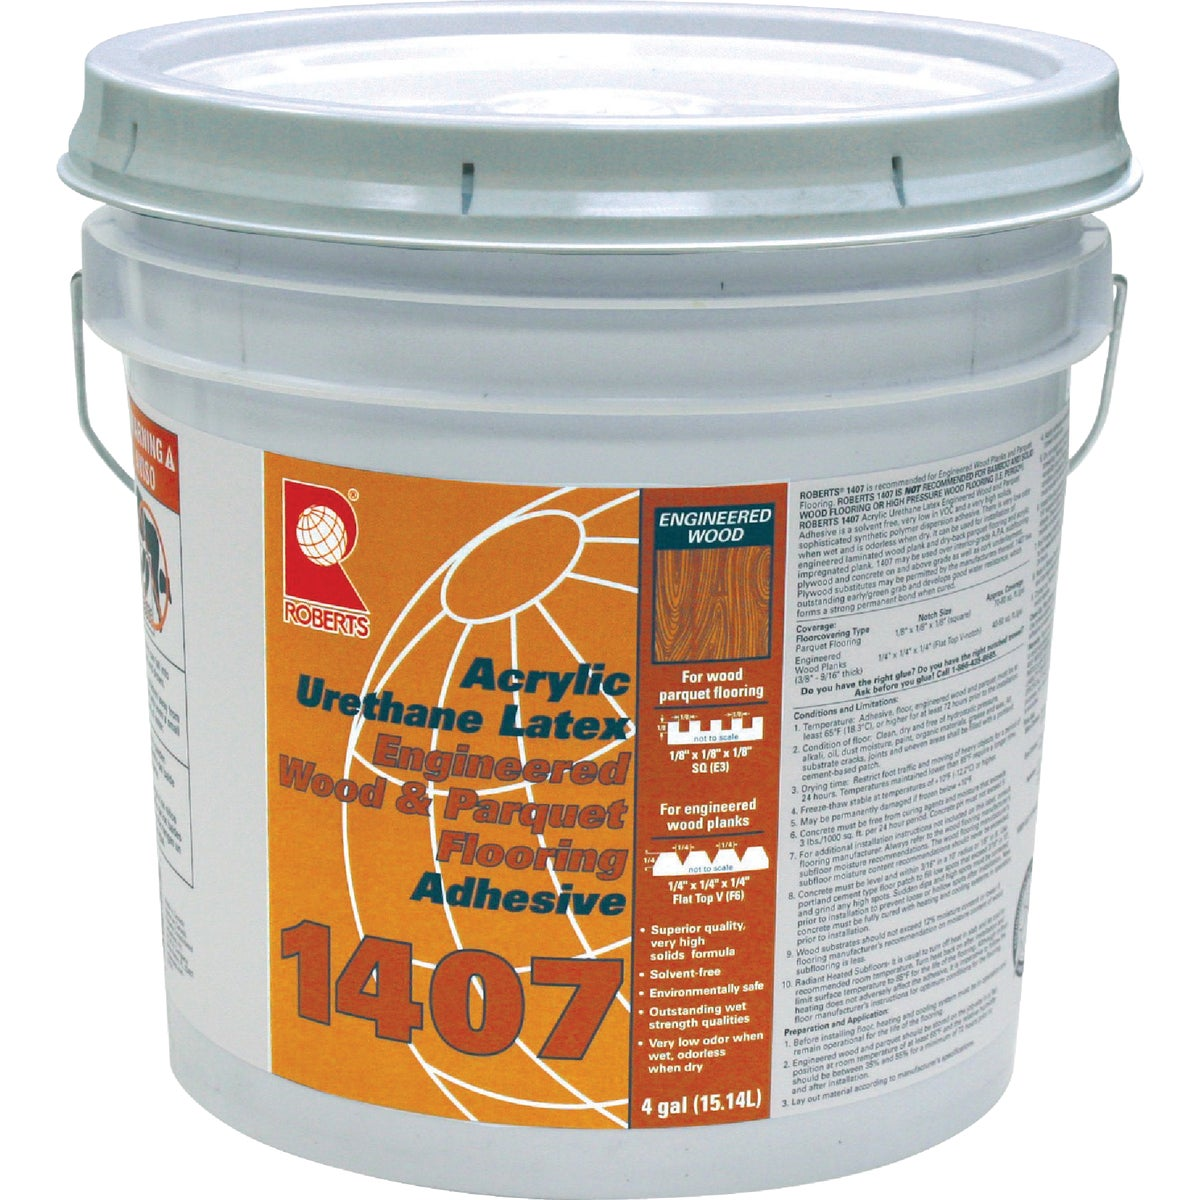 ACRYLIC LATEX ADHESIVE - 1407-4 by Qep Co Inc Roberts